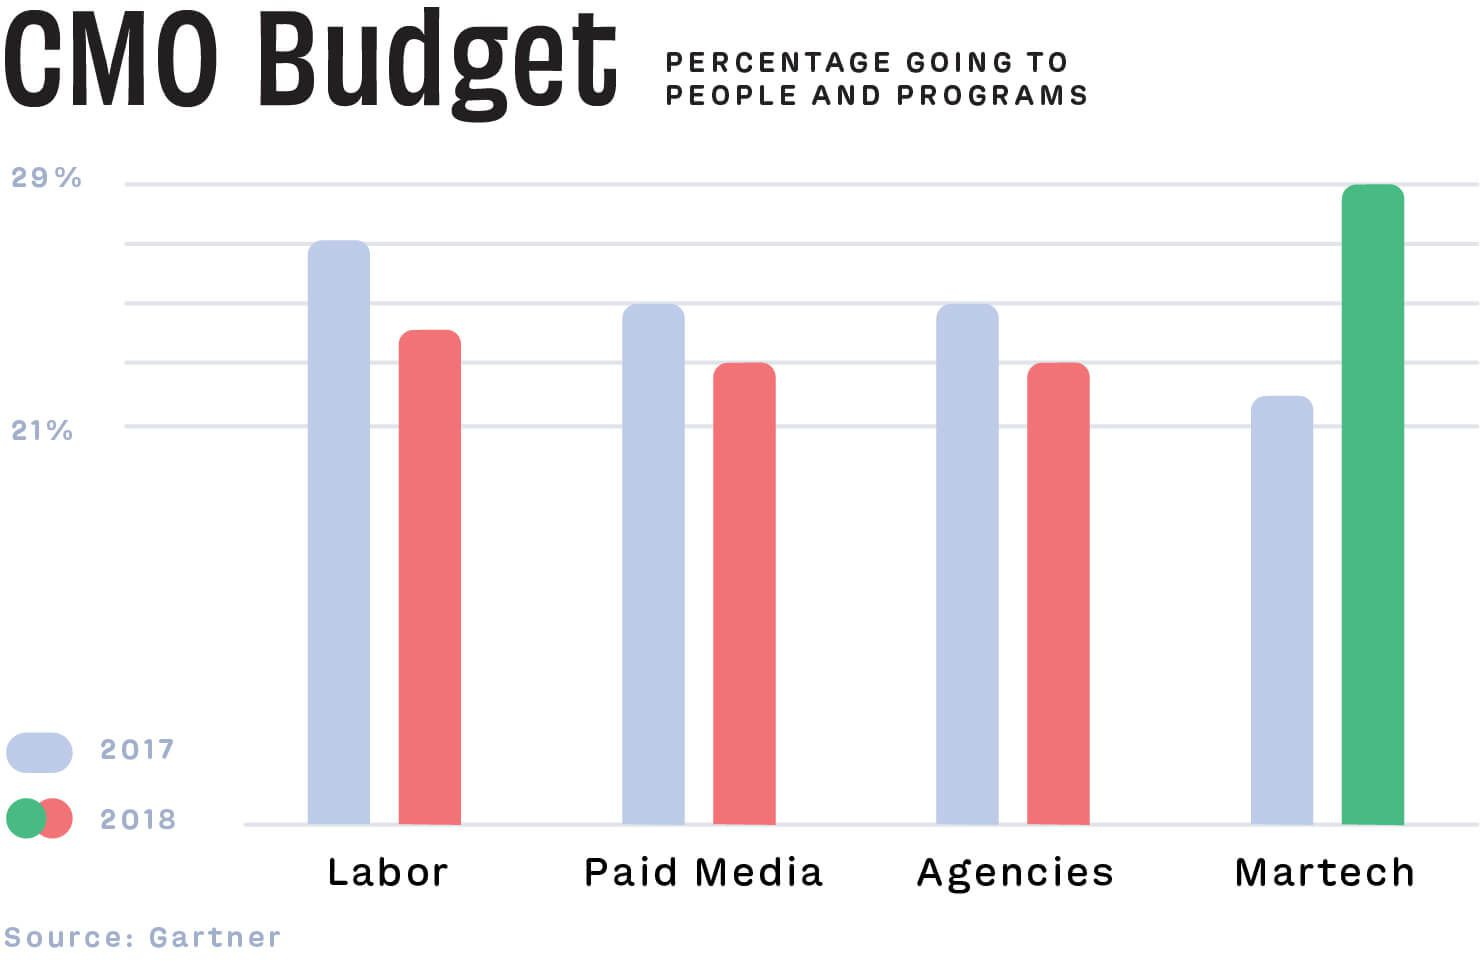 CMO budget planned increase for martech budgets